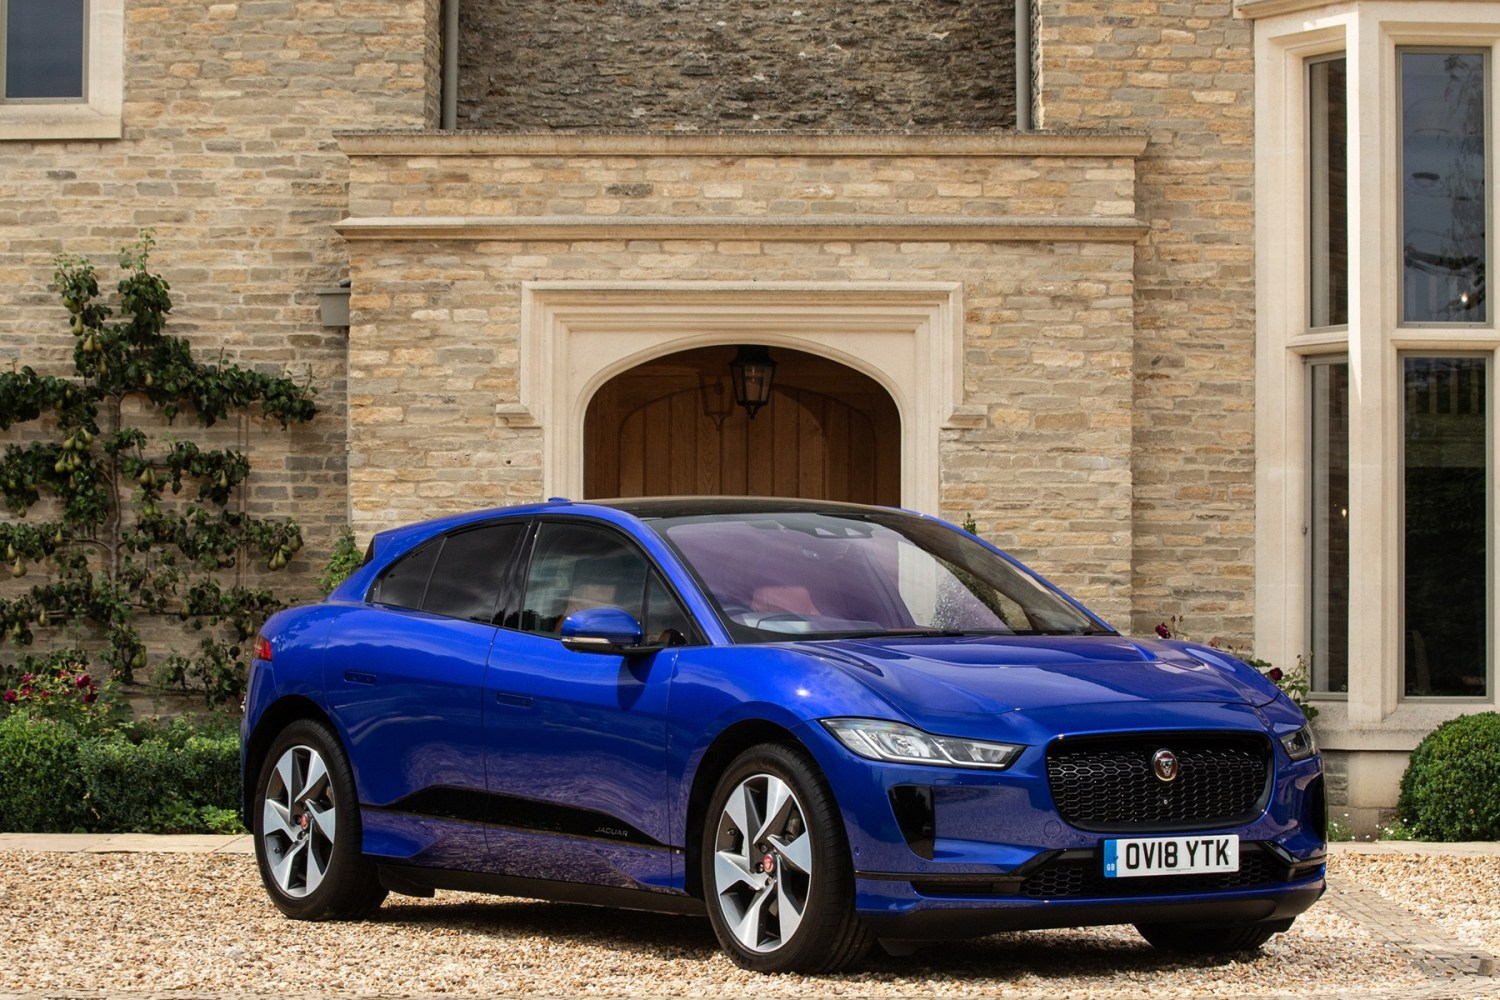 Jaguar Land Rover has issued a statement saying it would soon make components manufactured from recycled plastics available in its entire model range. The ChemCycling project is a joint enterprise with BASF, and the companies are already running tests of the new tech.